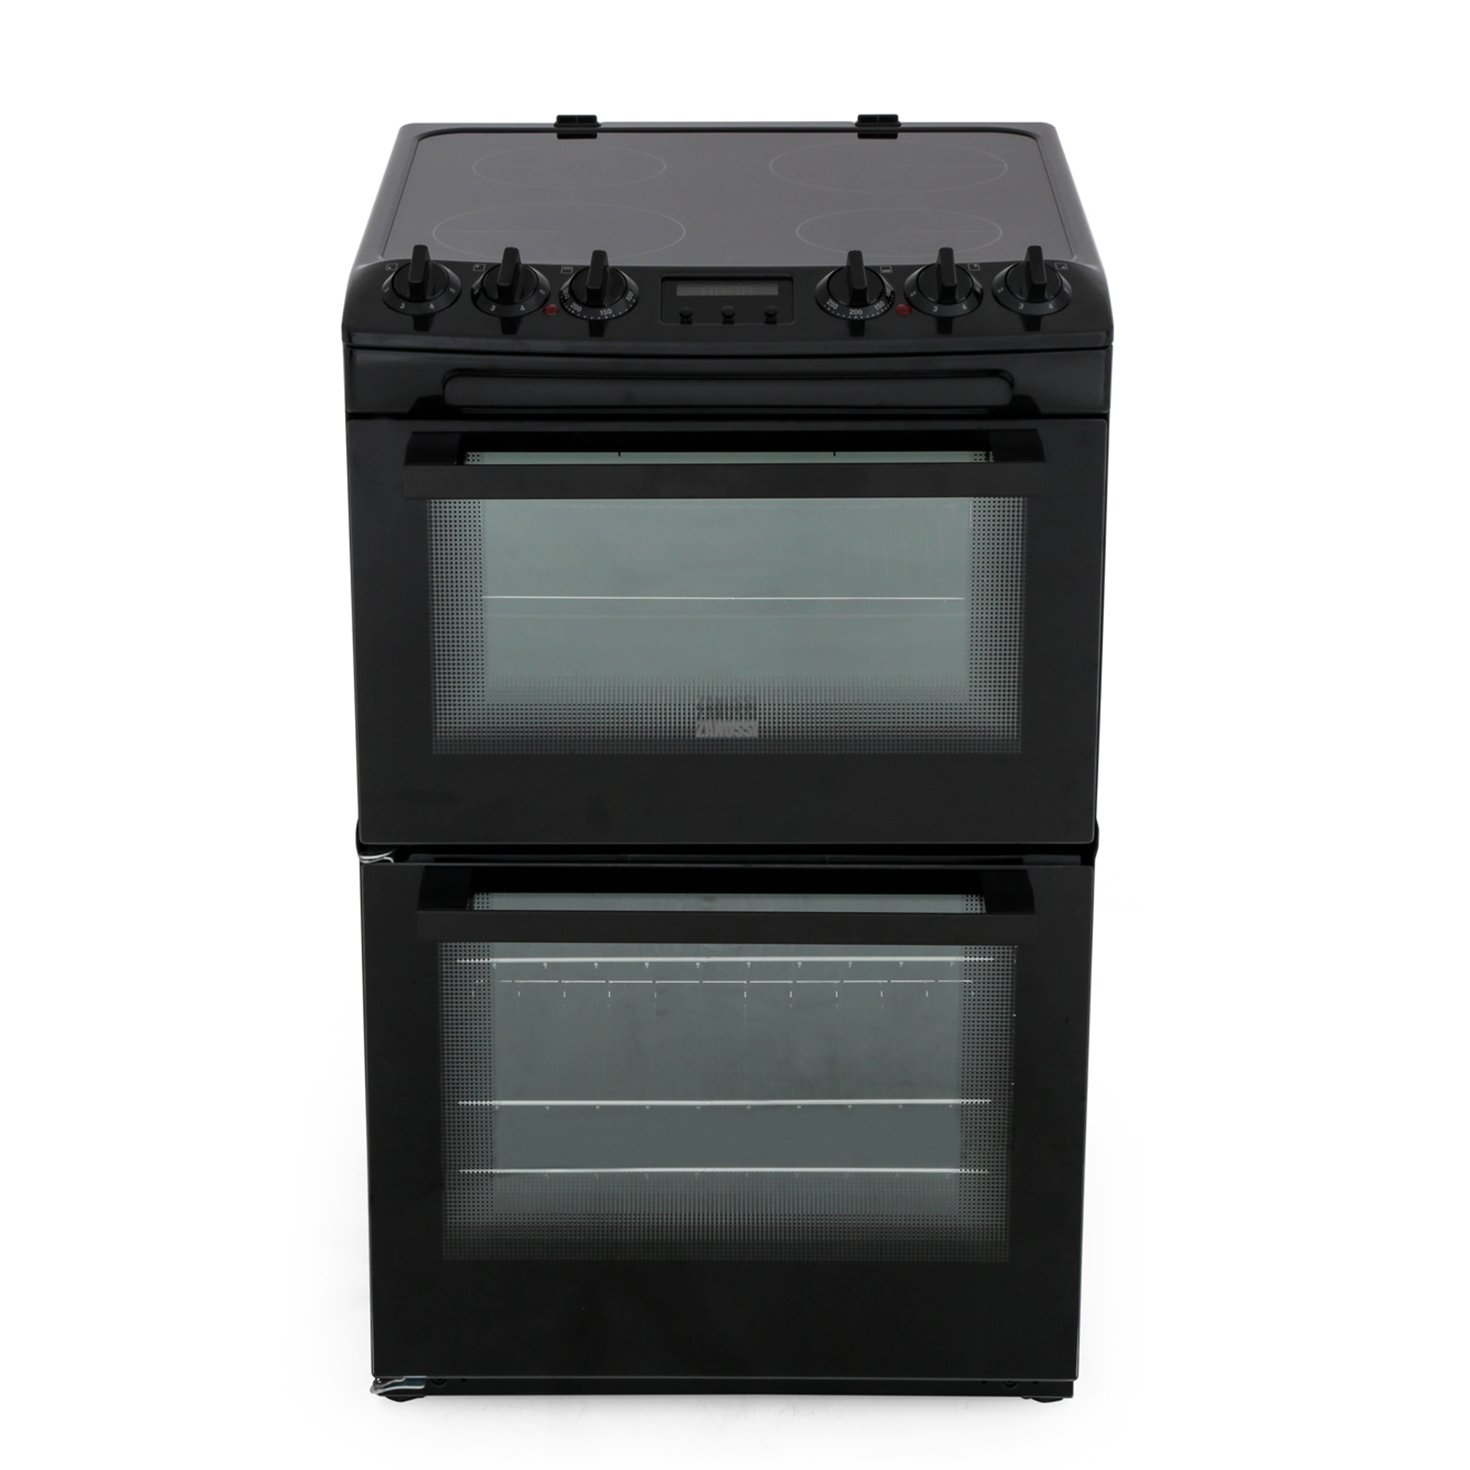 Zanussi ZCV46250BA Ceramic Electric Cooker with Double Oven